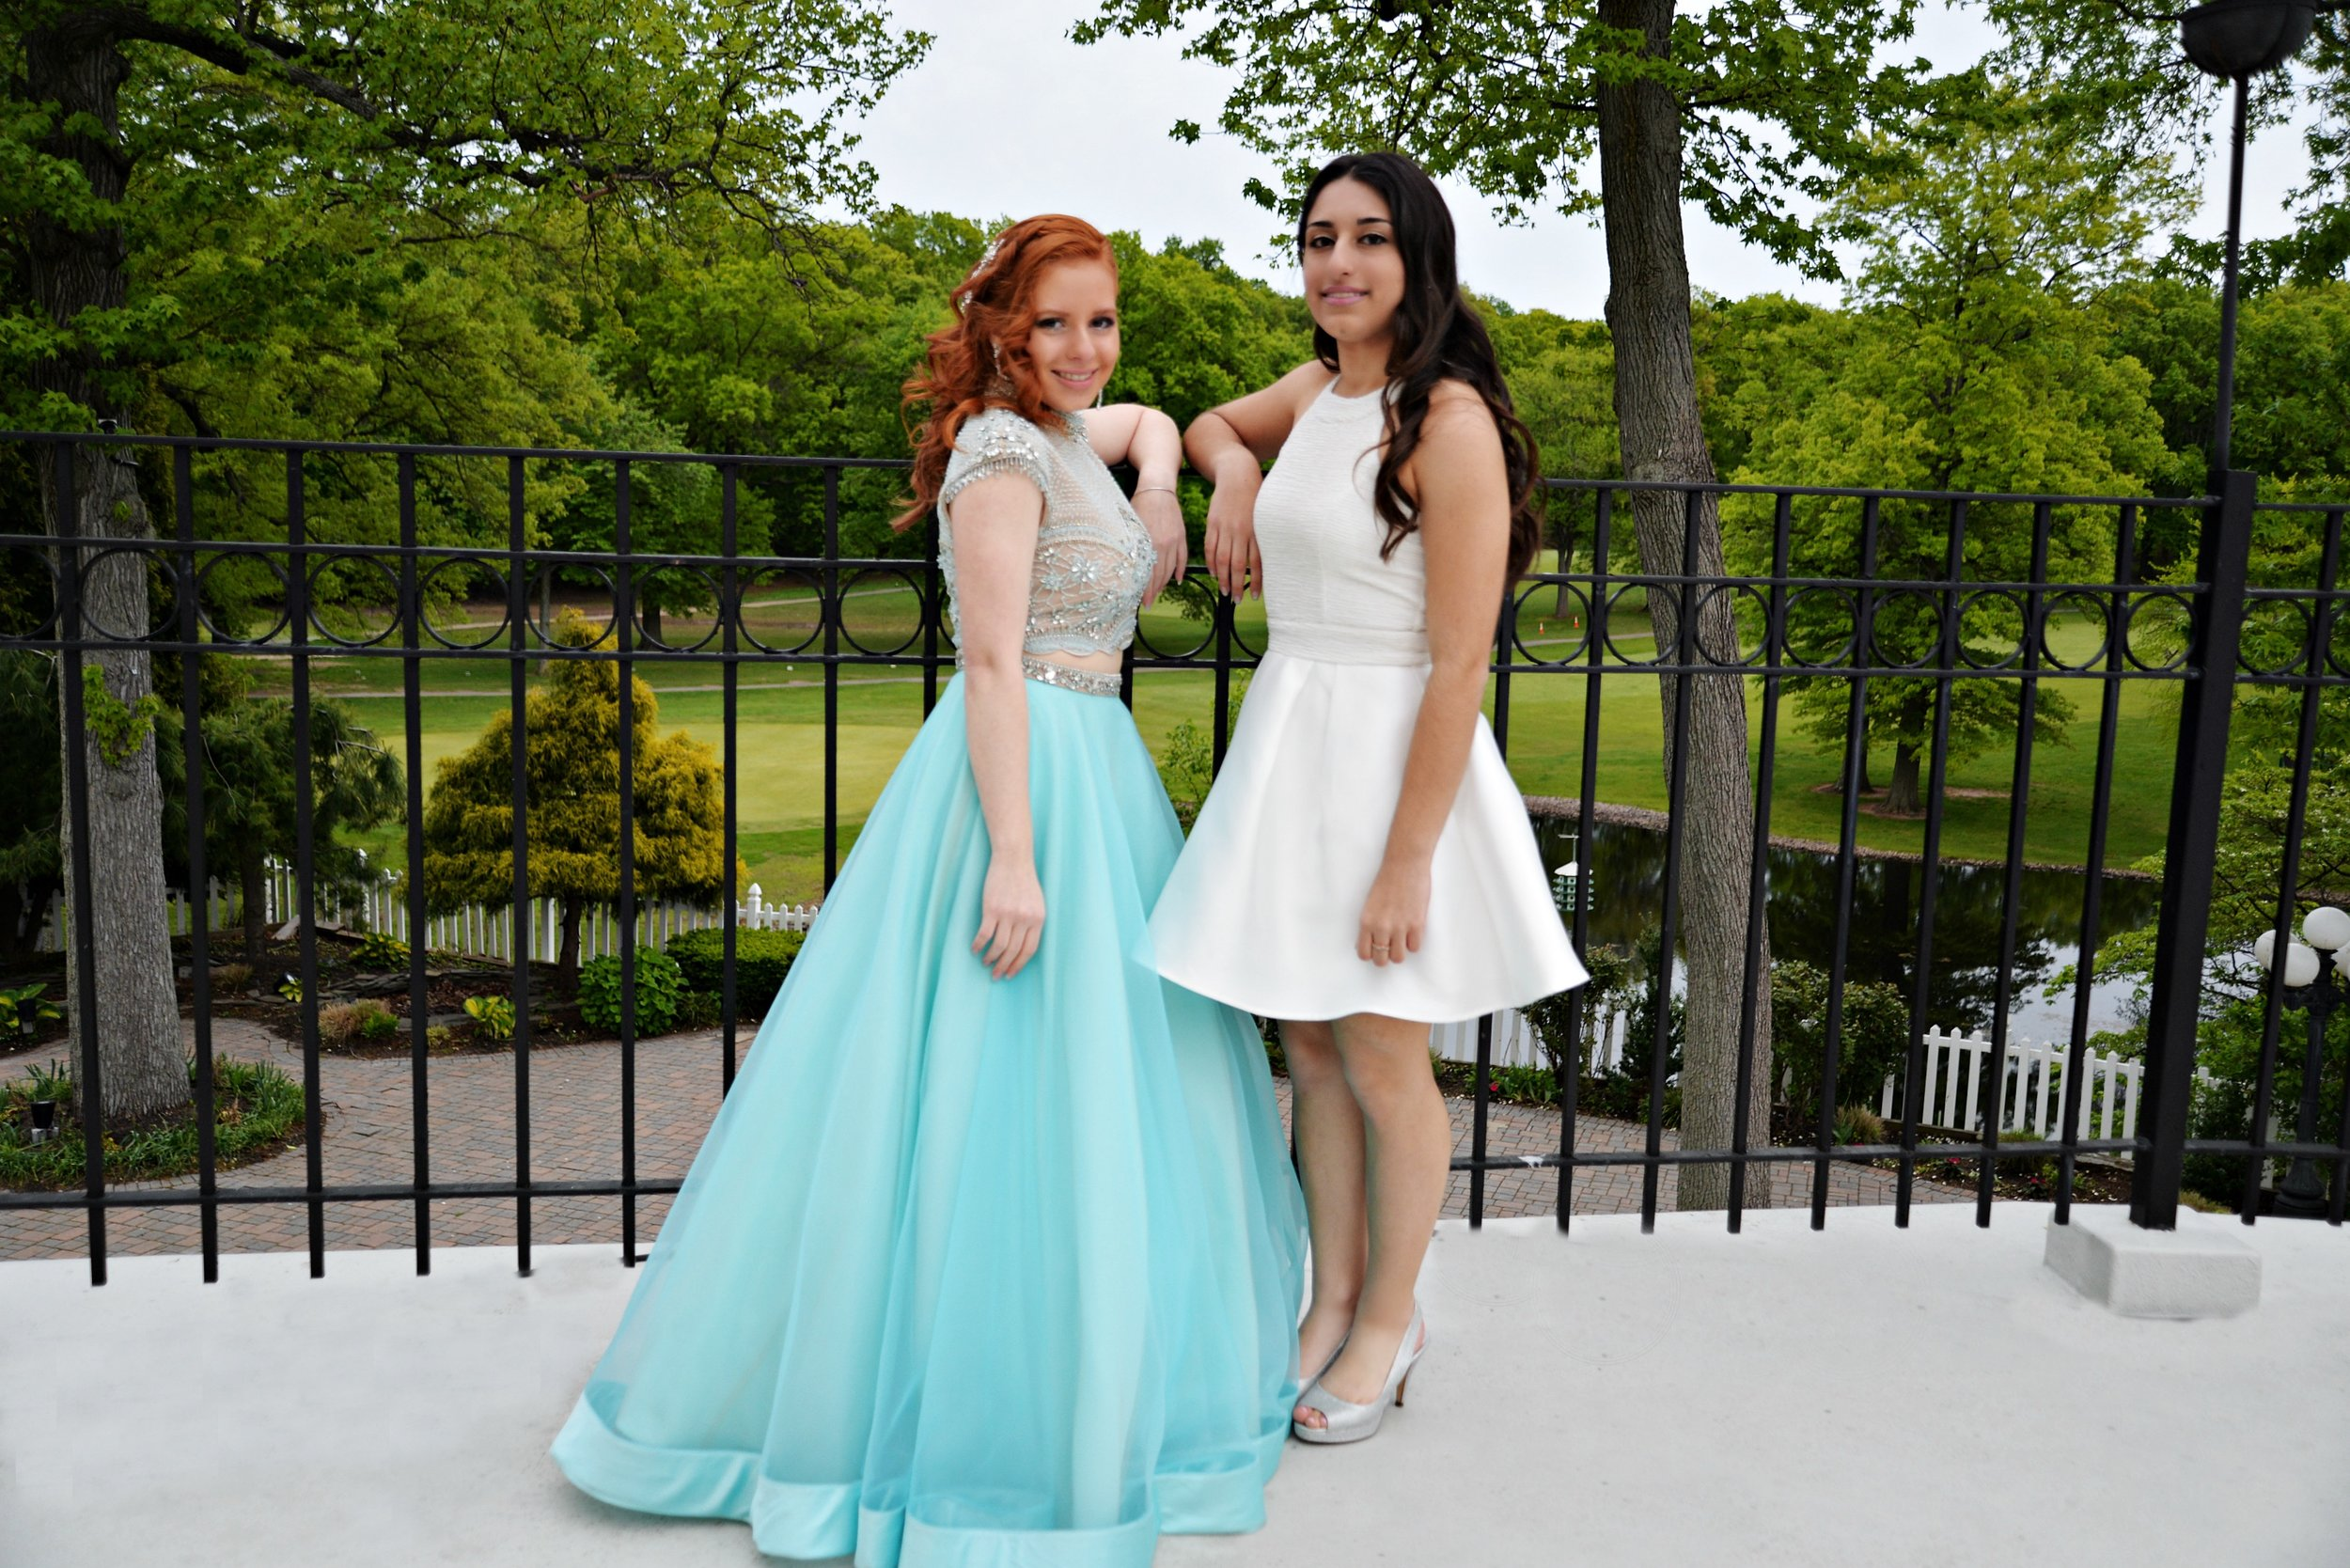 Prom hair and makeup staten island .jpg